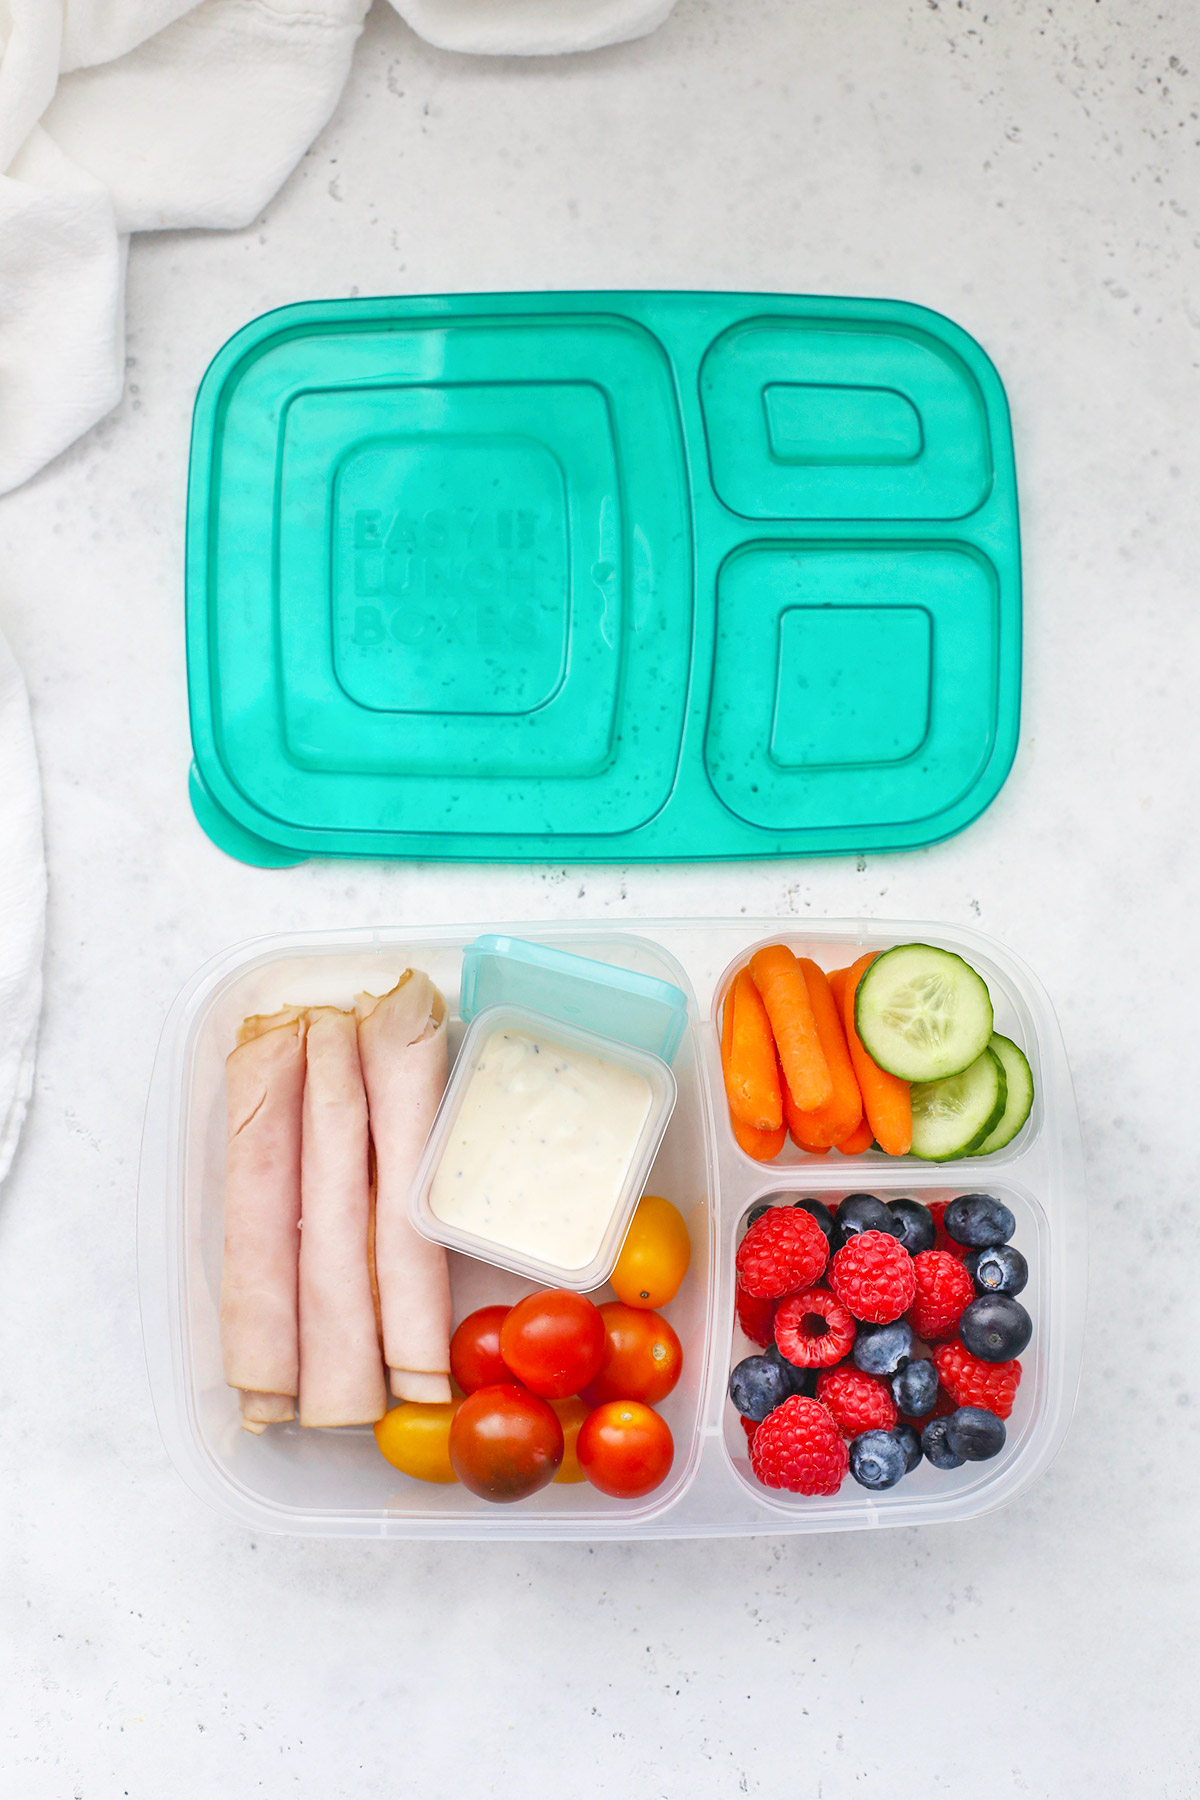 Easy Lunchbox with turkey roll-ups, ranch dressing, fresh veggies, and mixed berries